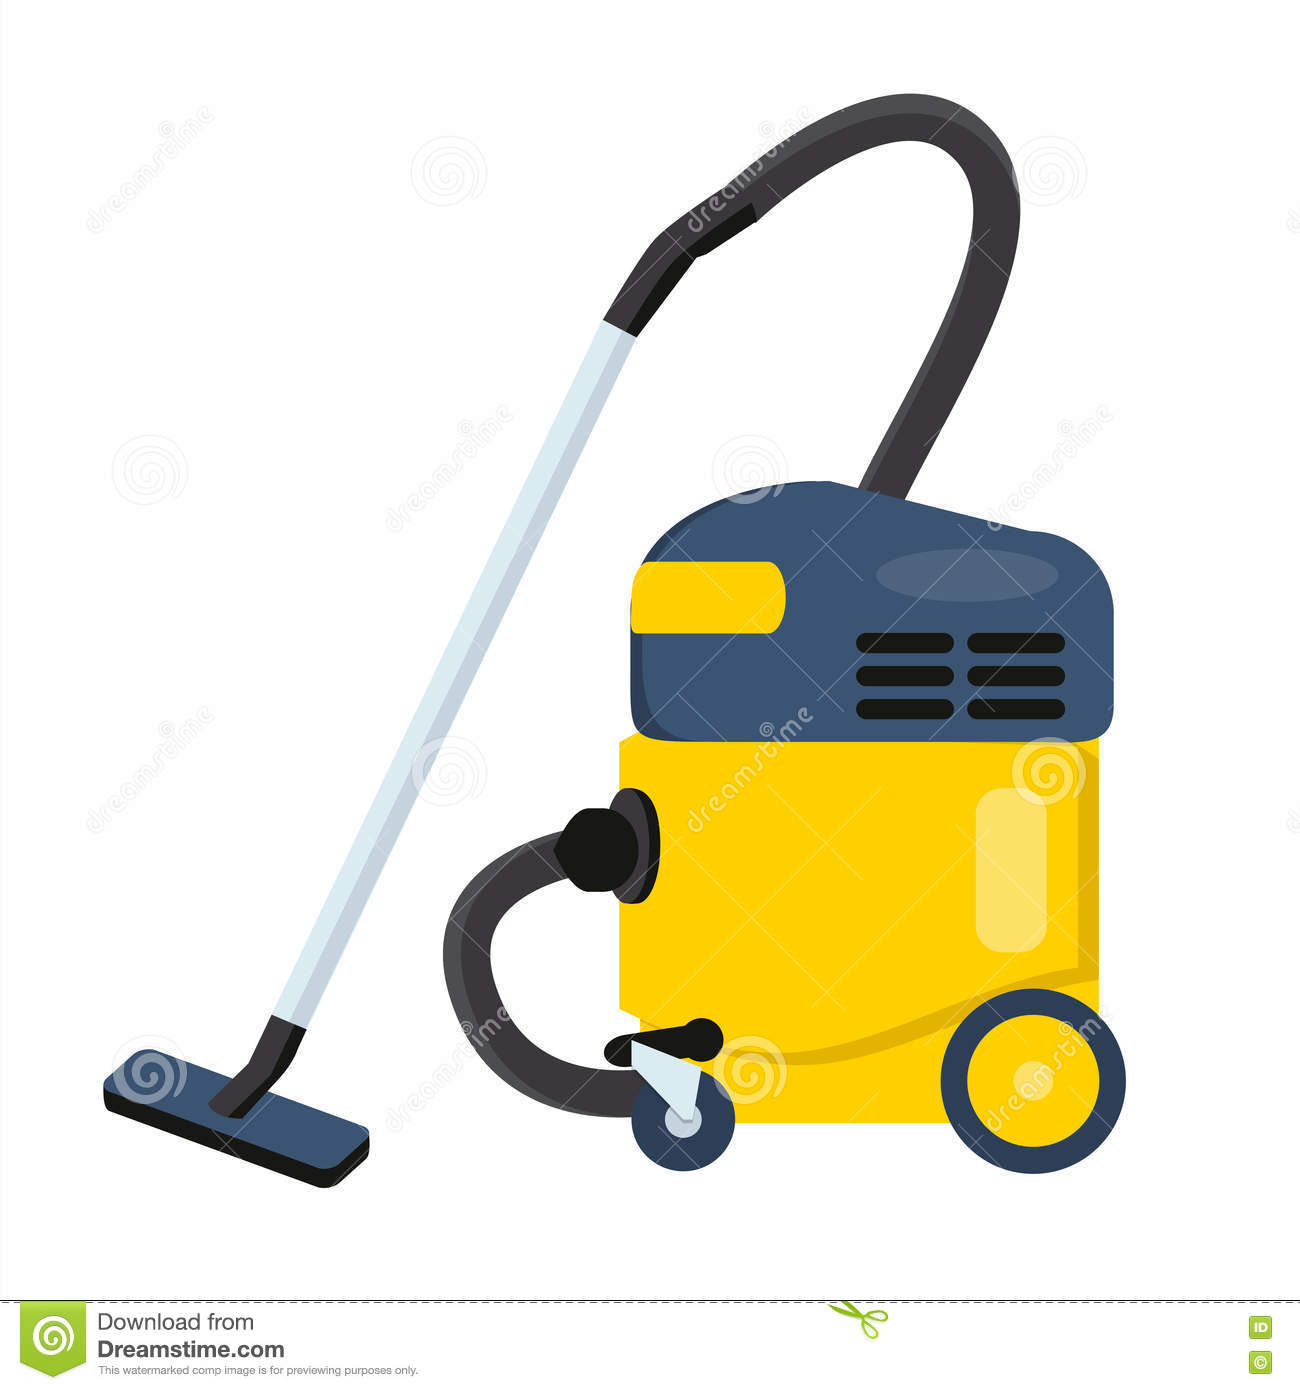 Vacuum cleaner clipart vacuum cleaner clip art - Vacuum Cleaner Vector Illustration Hoover Icon Stock Vector